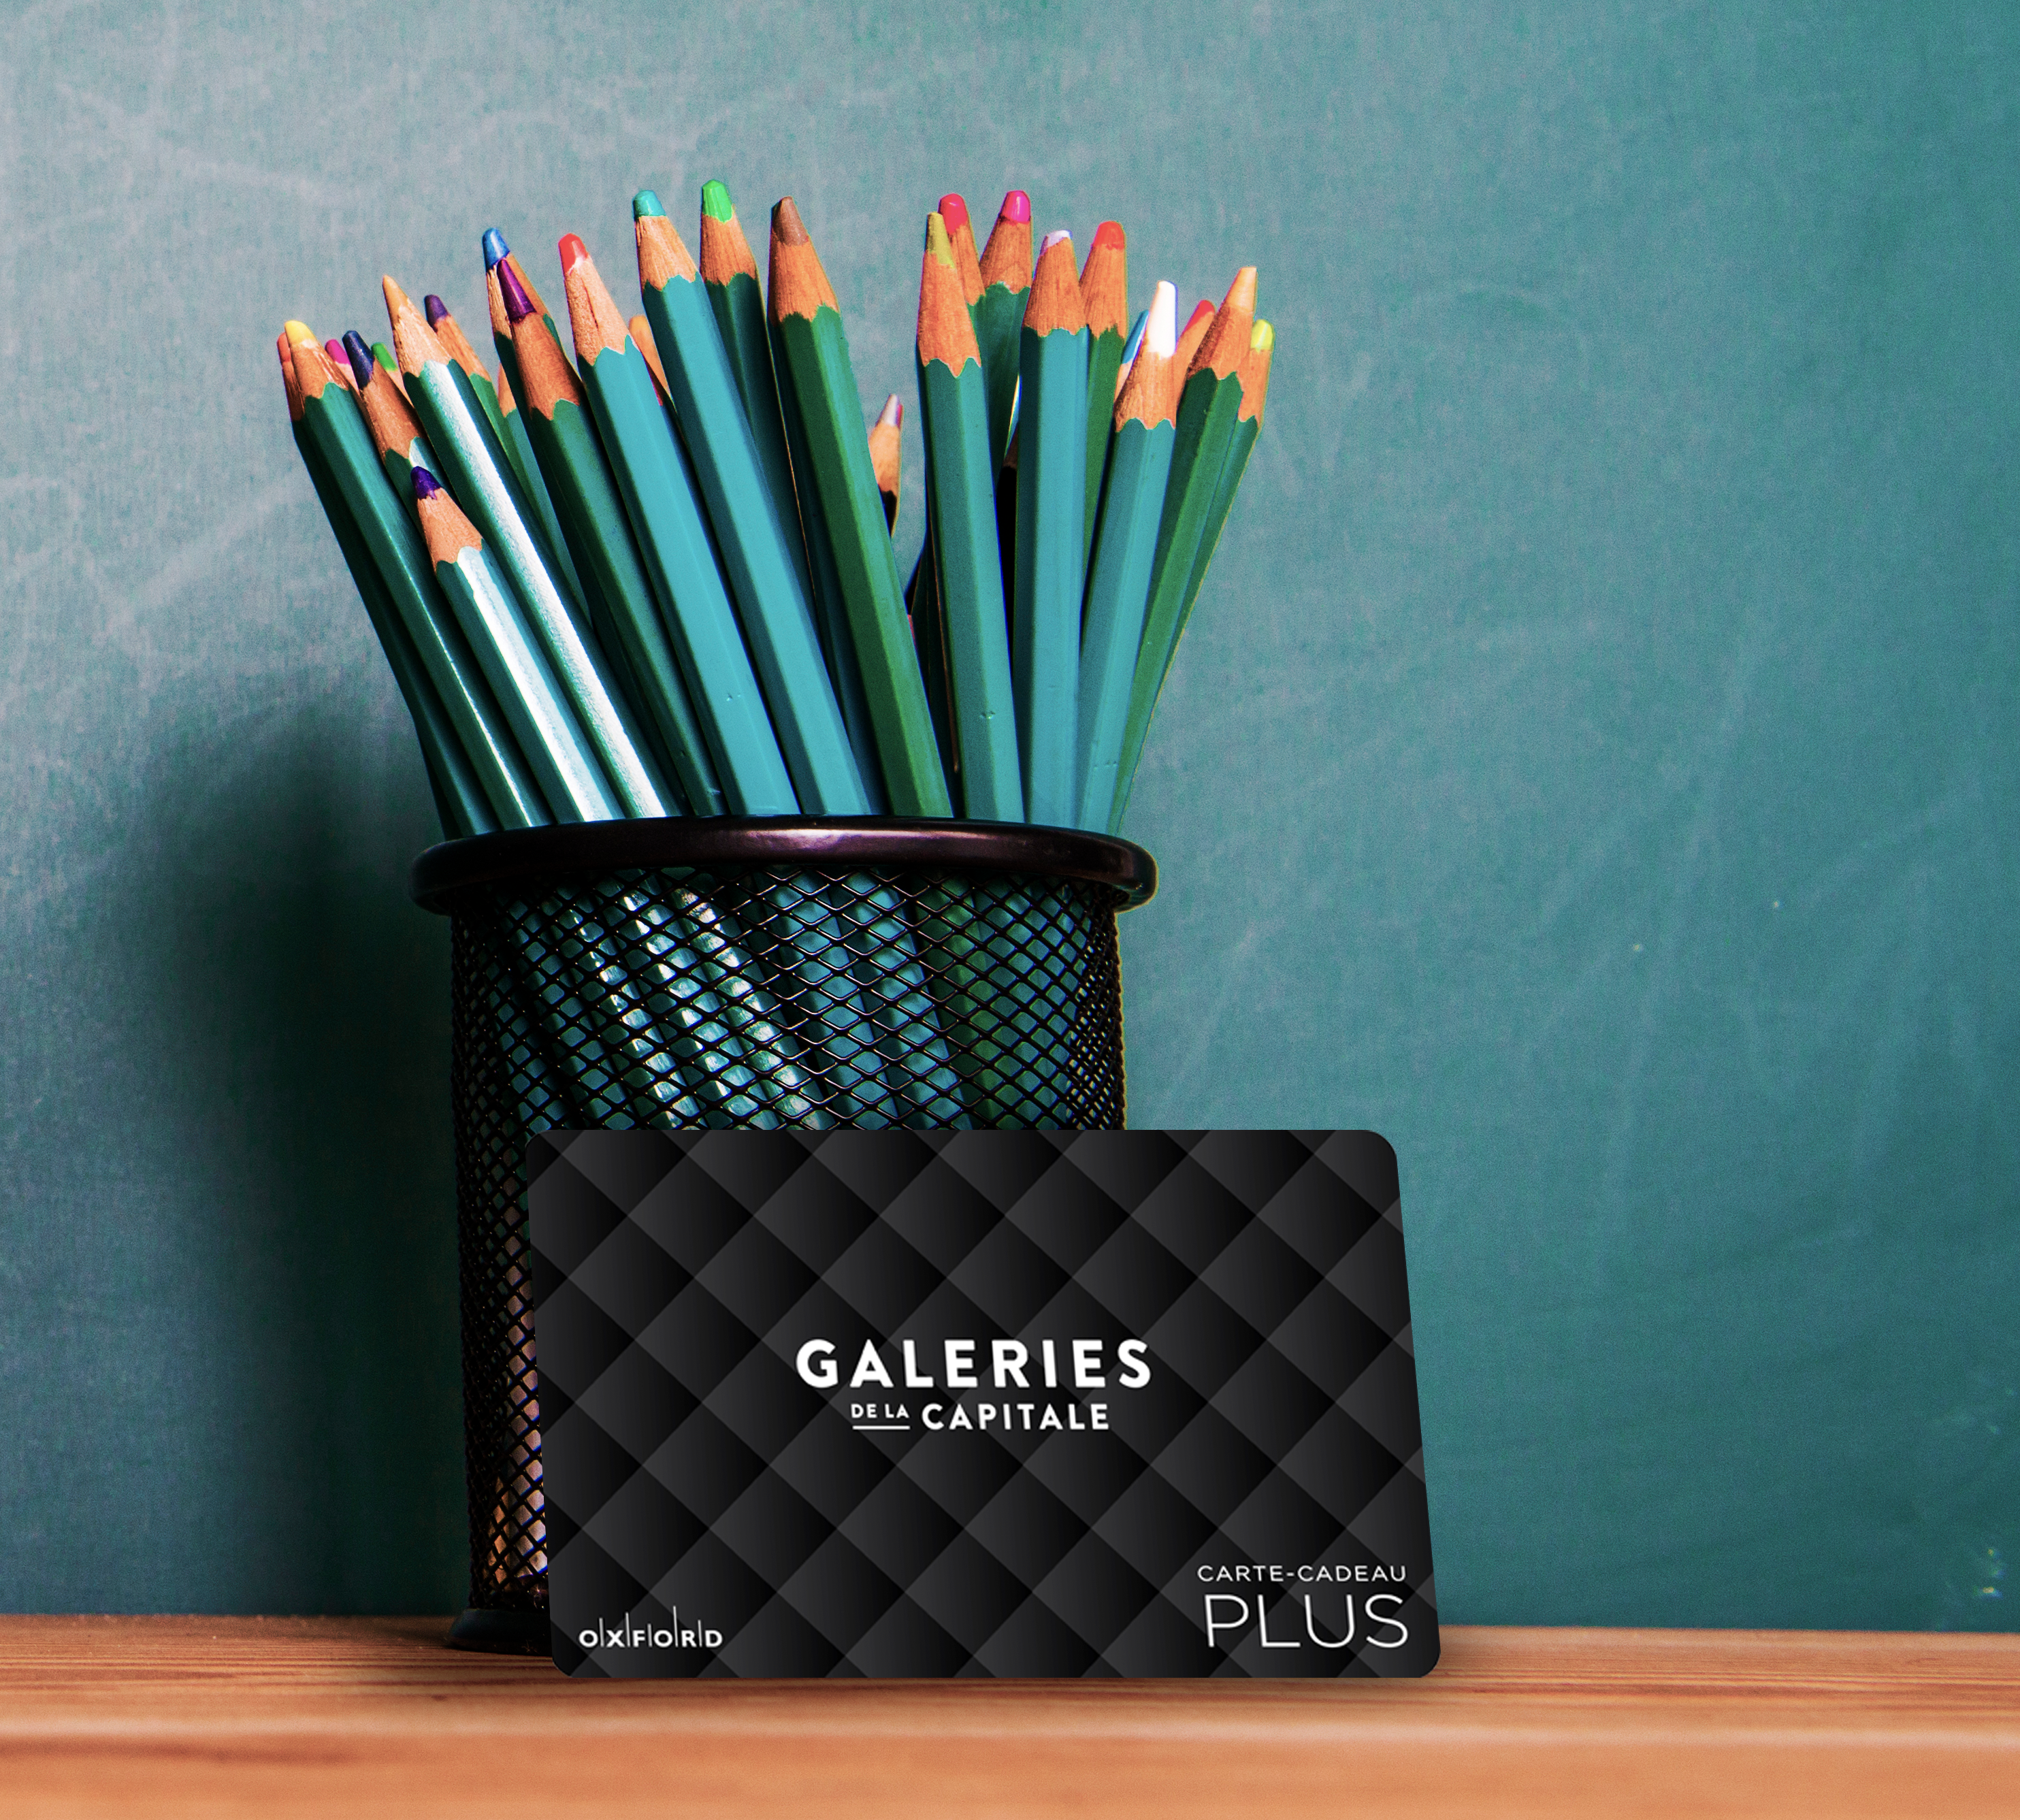 Capitale black gift card with black container coloured pencils.